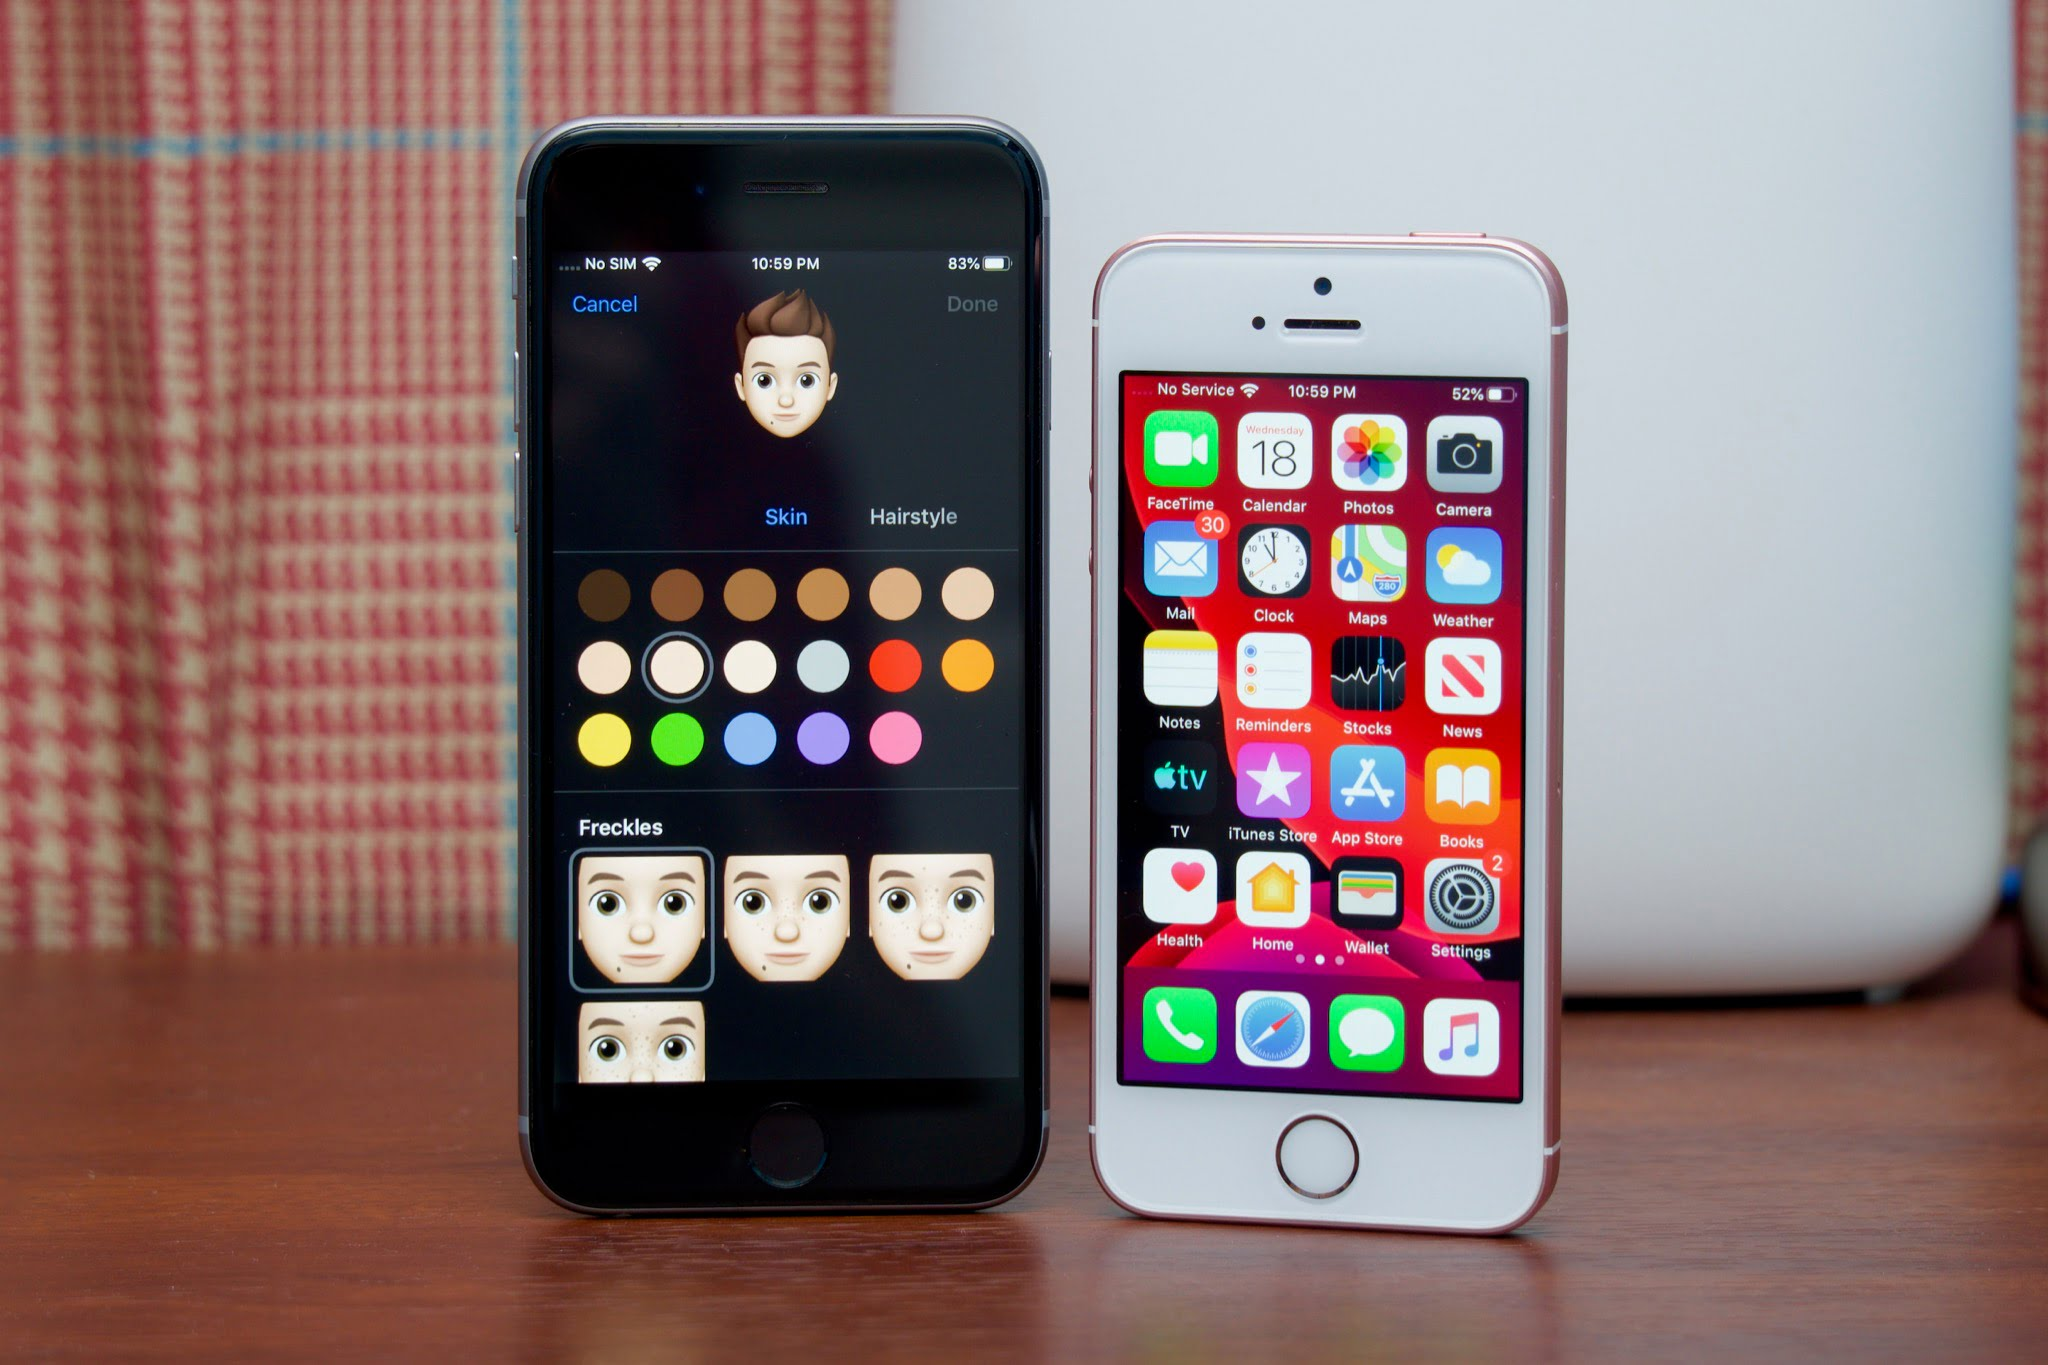 5 Tips for Using 3D Touch on iPhone 6s